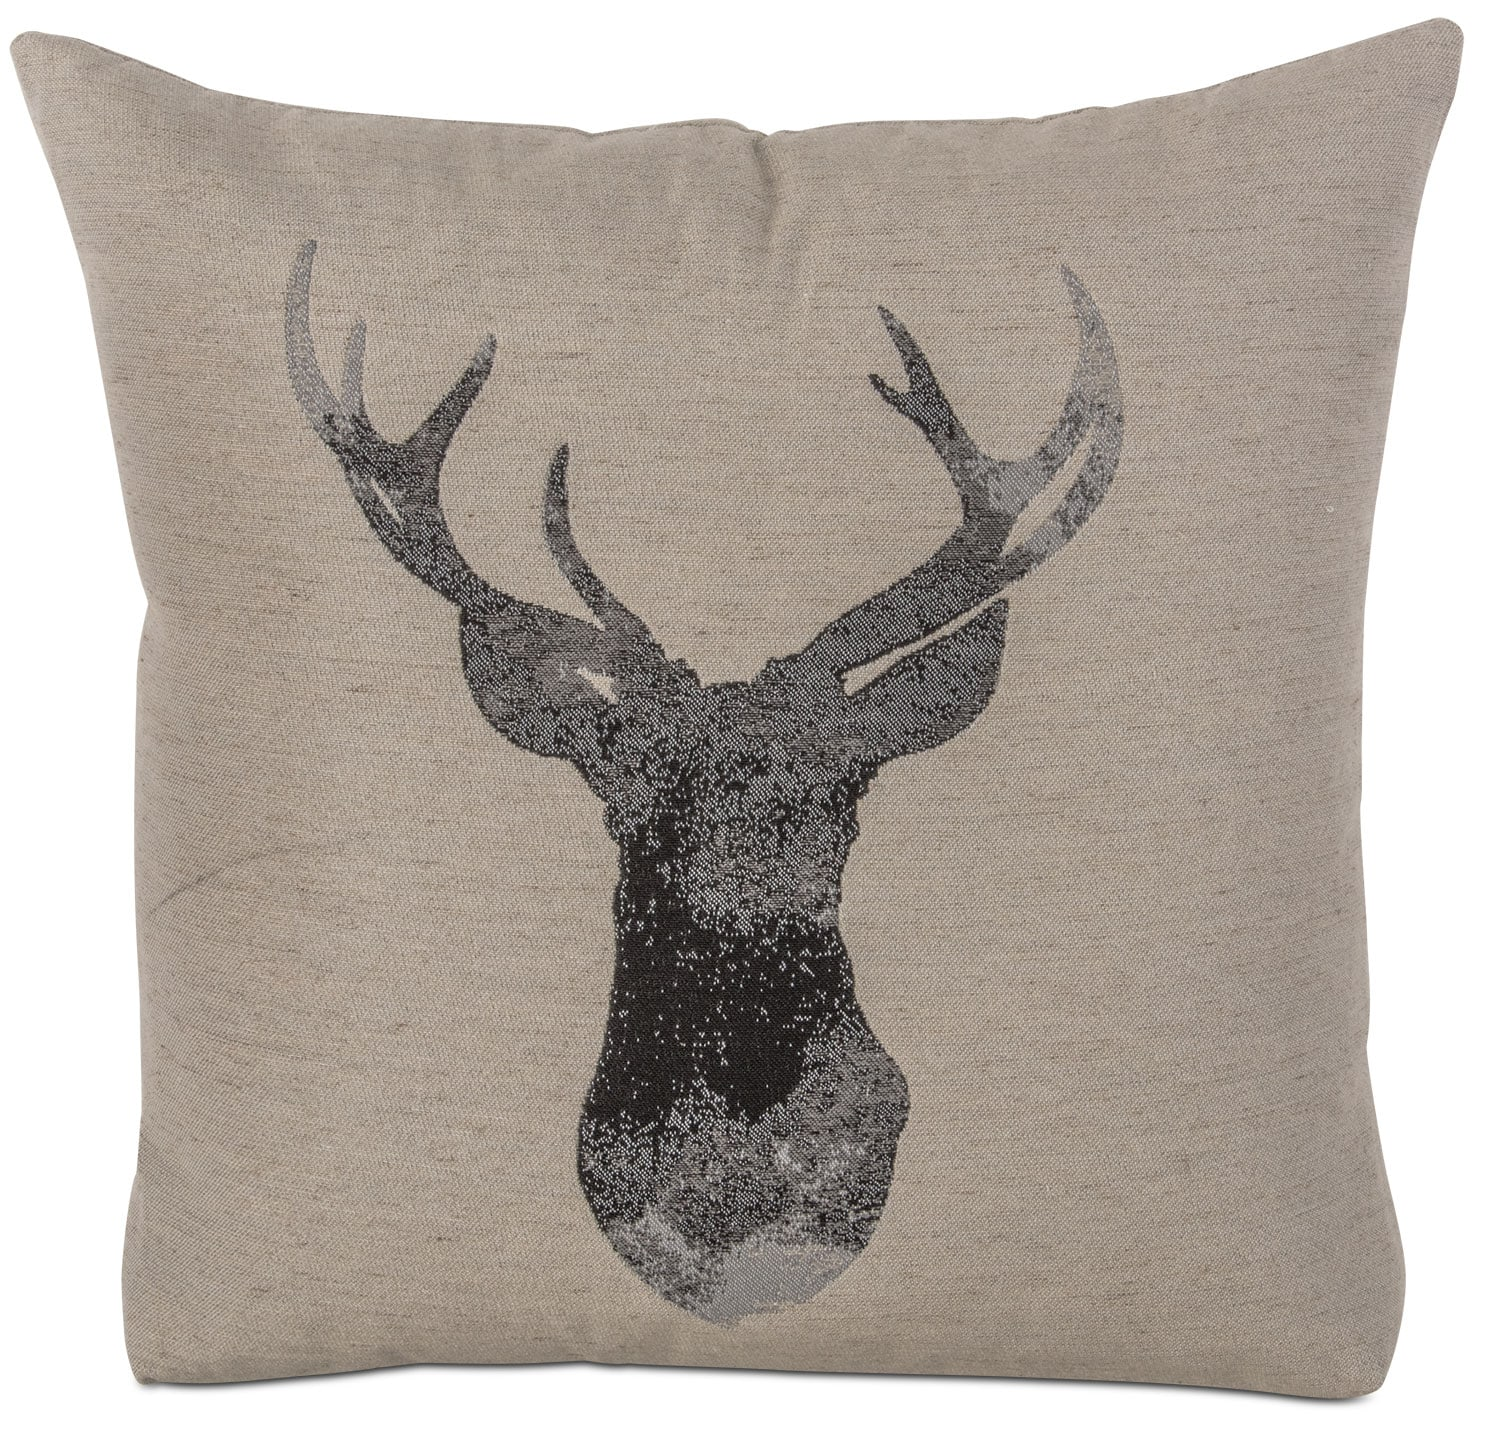 Natural Decorative Pillow : Buckhead Decorative Pillow - Natural American Signature Furniture